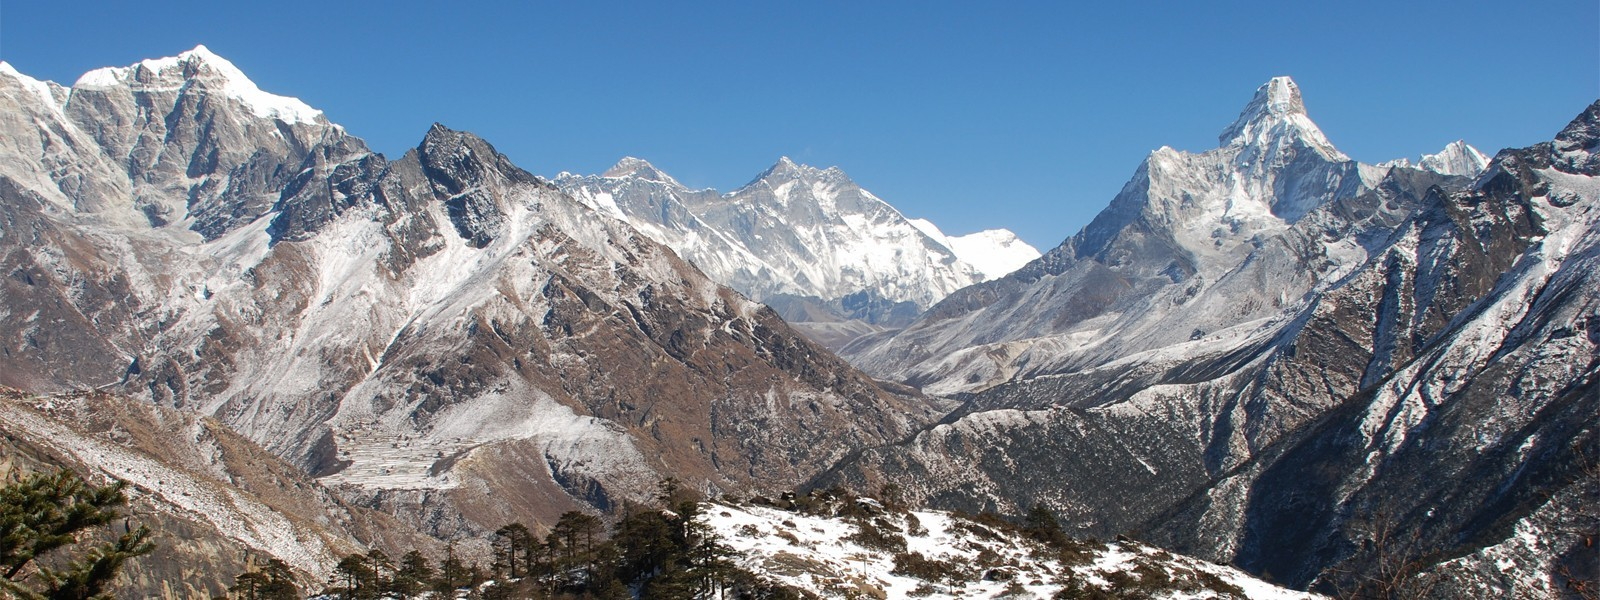 Everest Base Camp and Kala Pattar